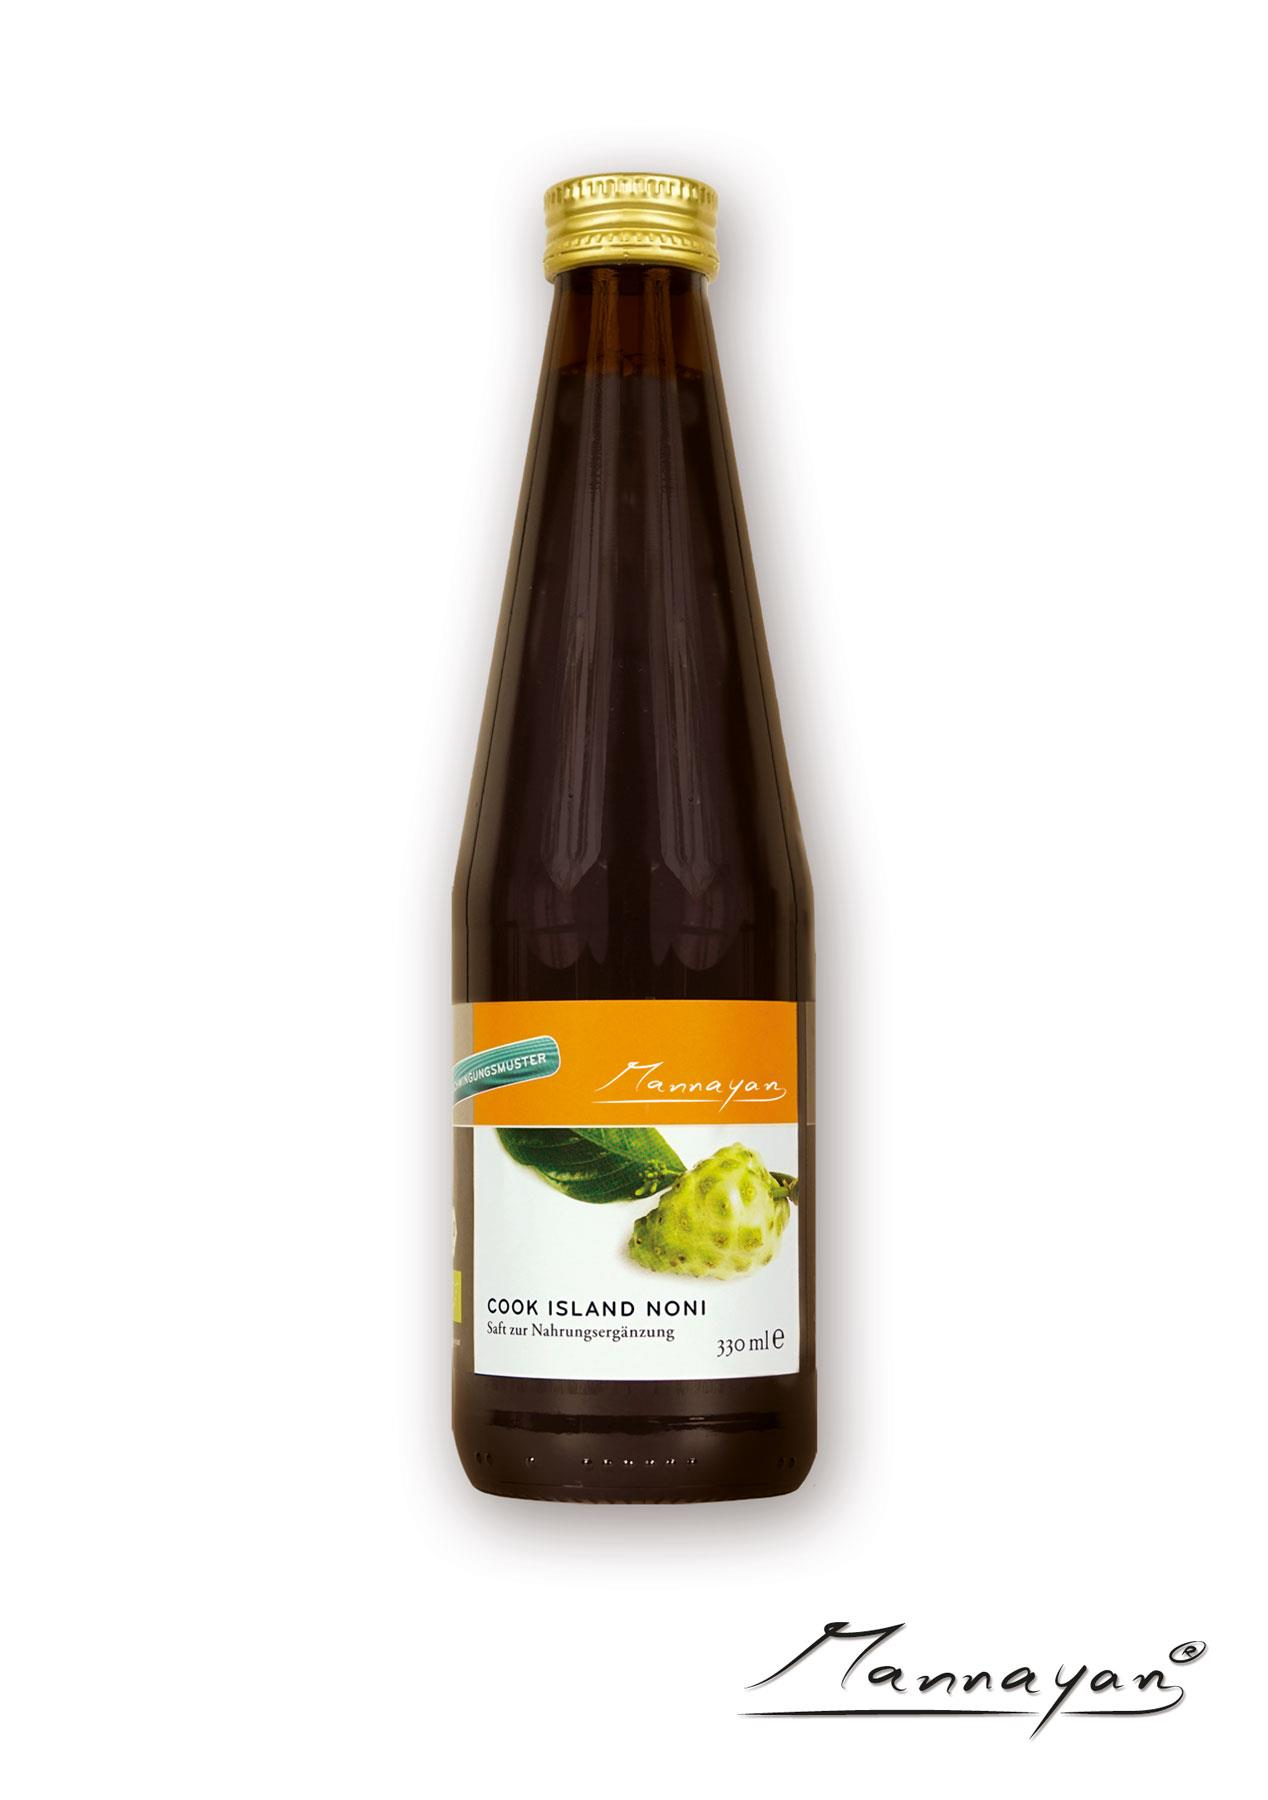 Cook Islands Noni Saft von Mannayan